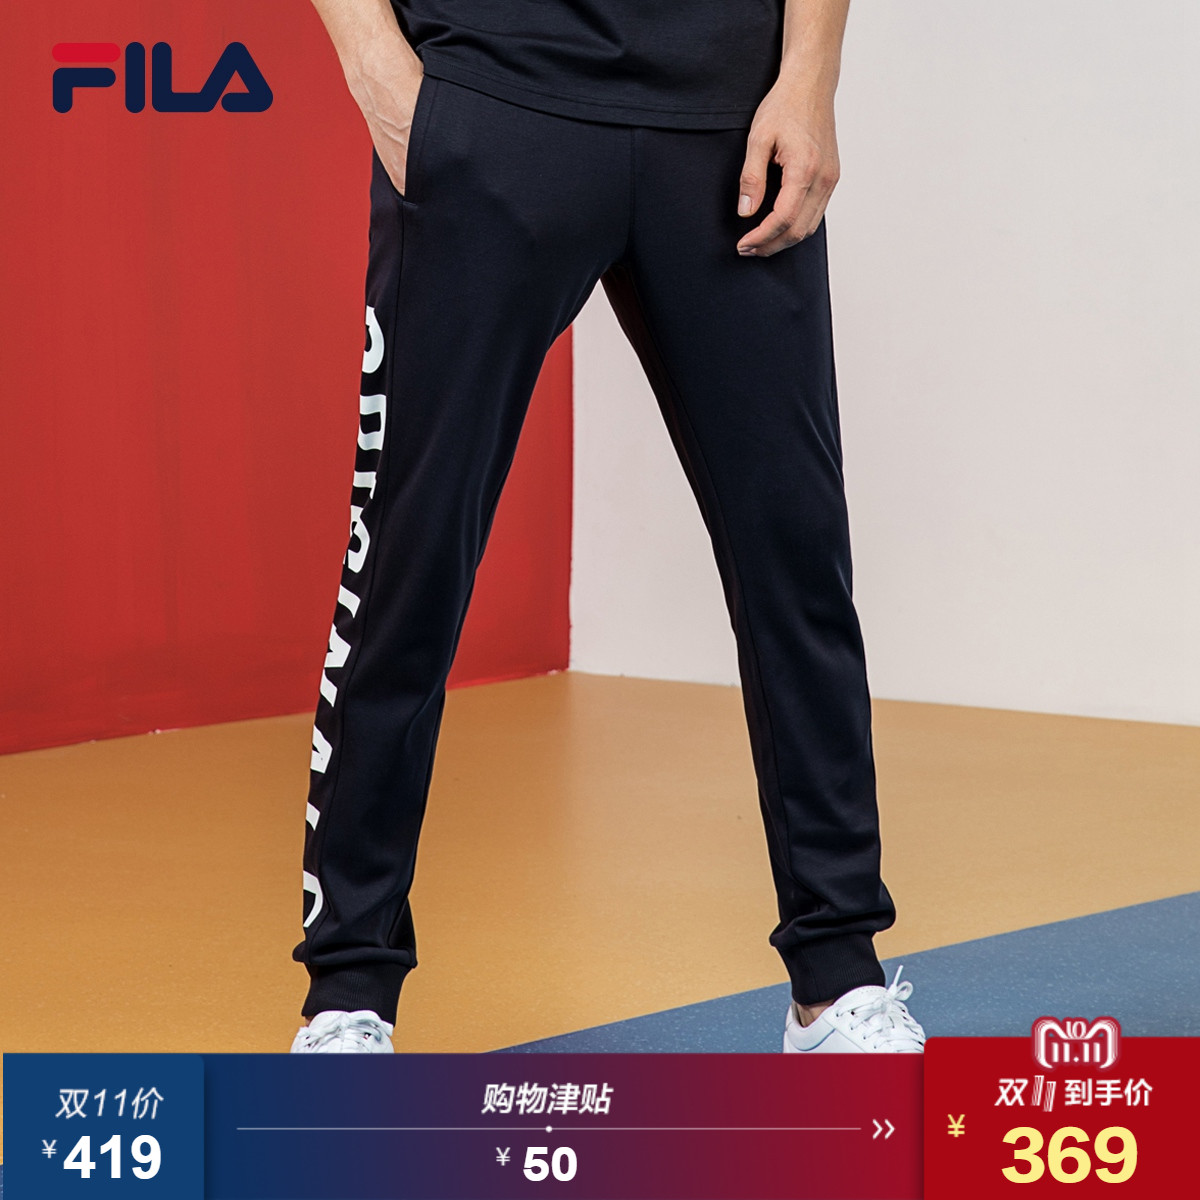 cc1afafb14a2 FILA Fei Le mens trousers 2018 spring new product pants pants fashion trend running  pants men-J3sMart Brunei's No.1 online shopping store